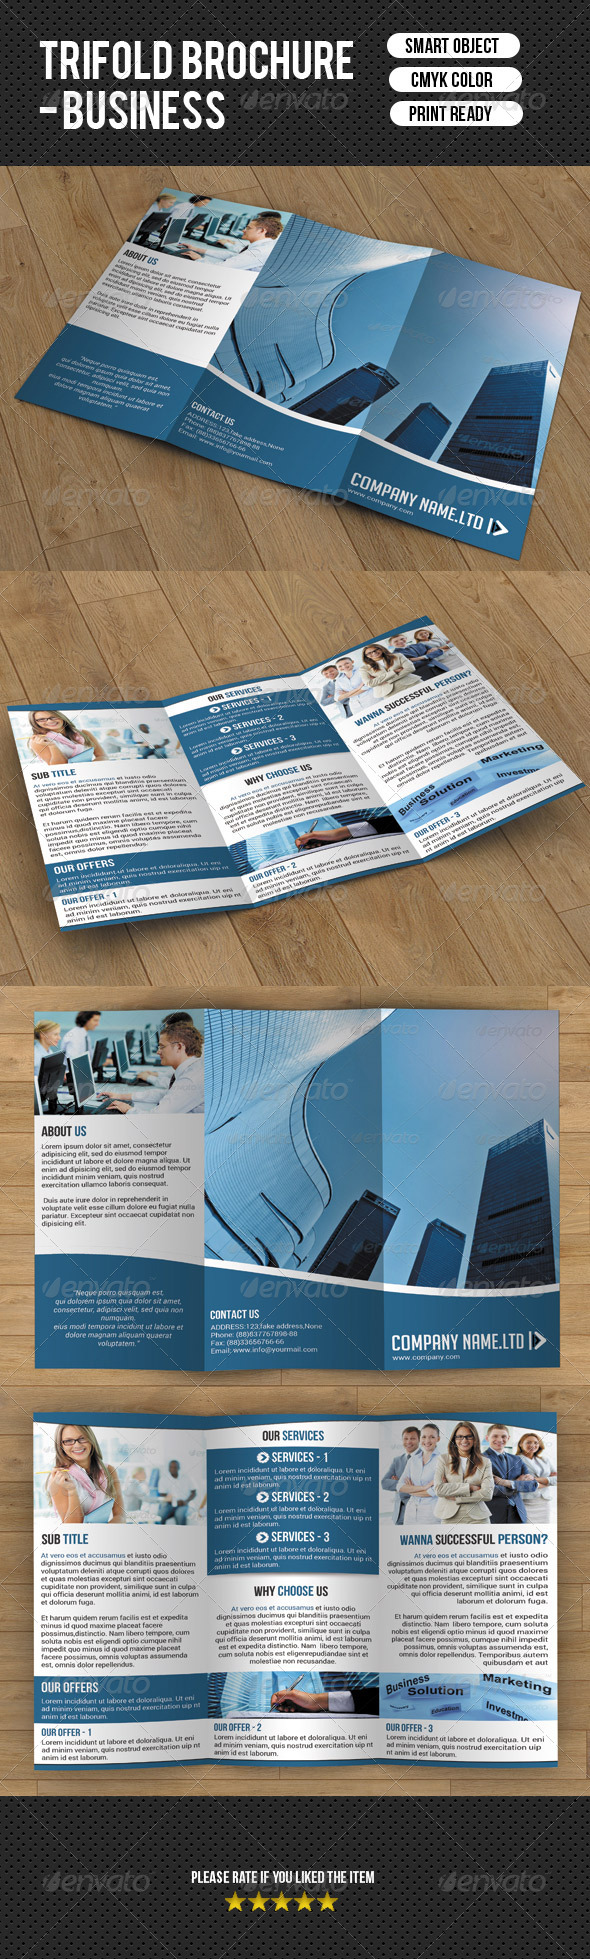 GraphicRiver Trifold Brochure-Business 7629125